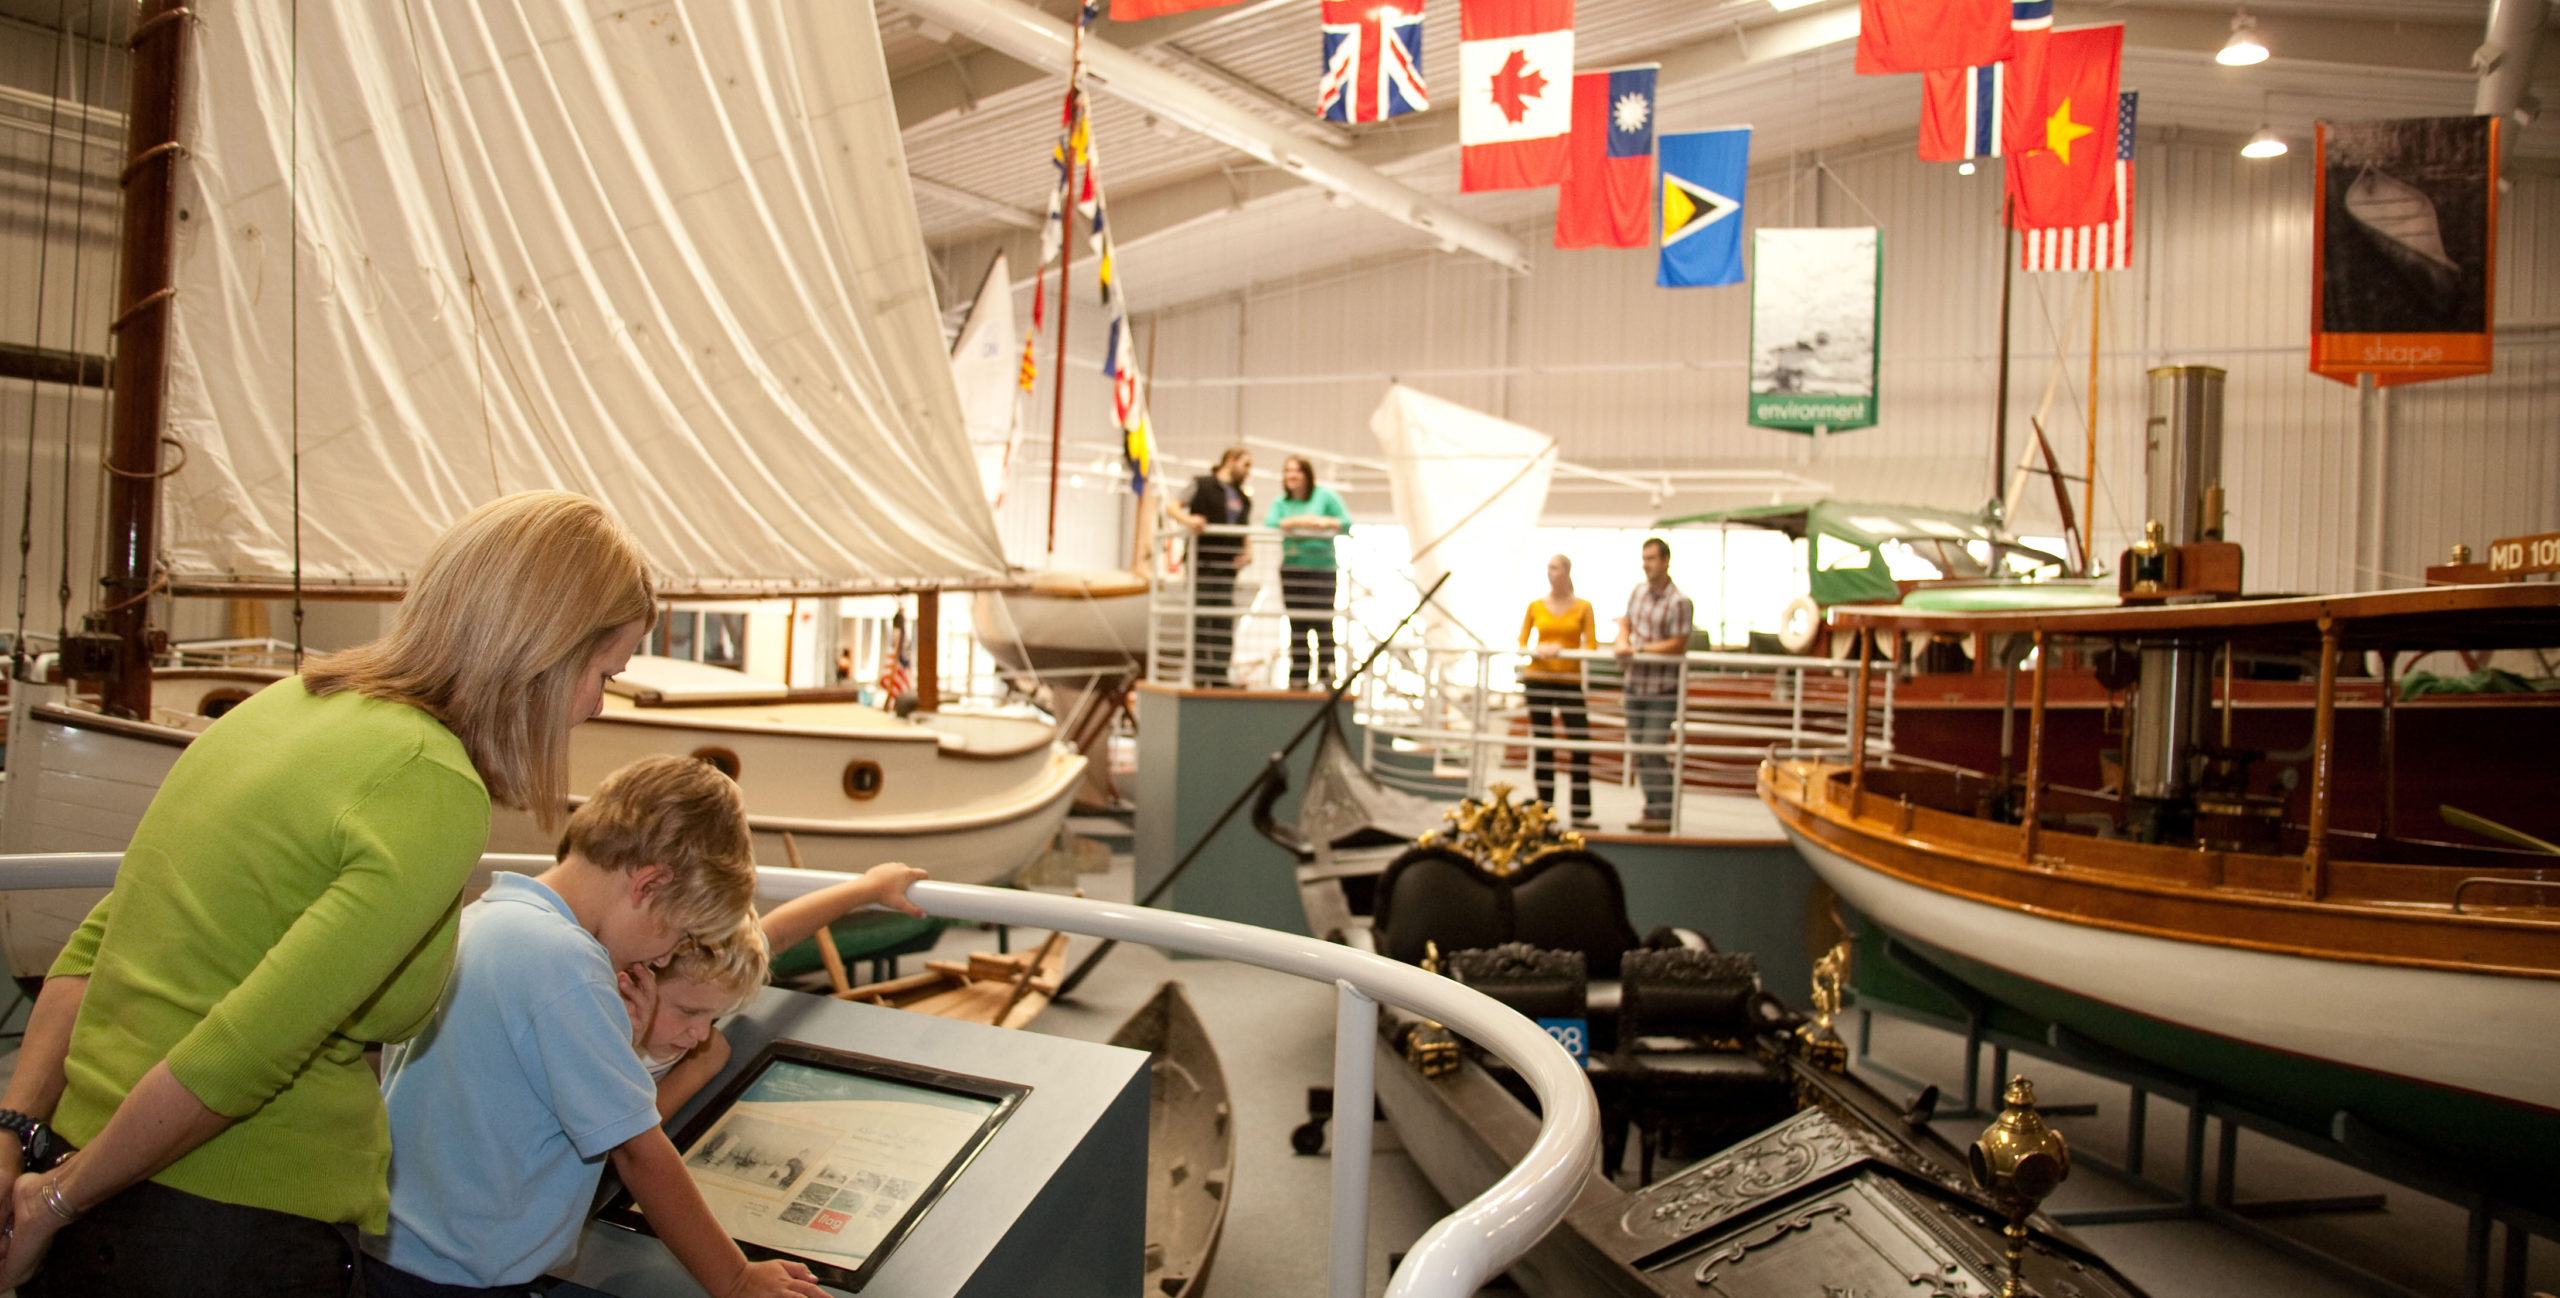 International Small Craft Center